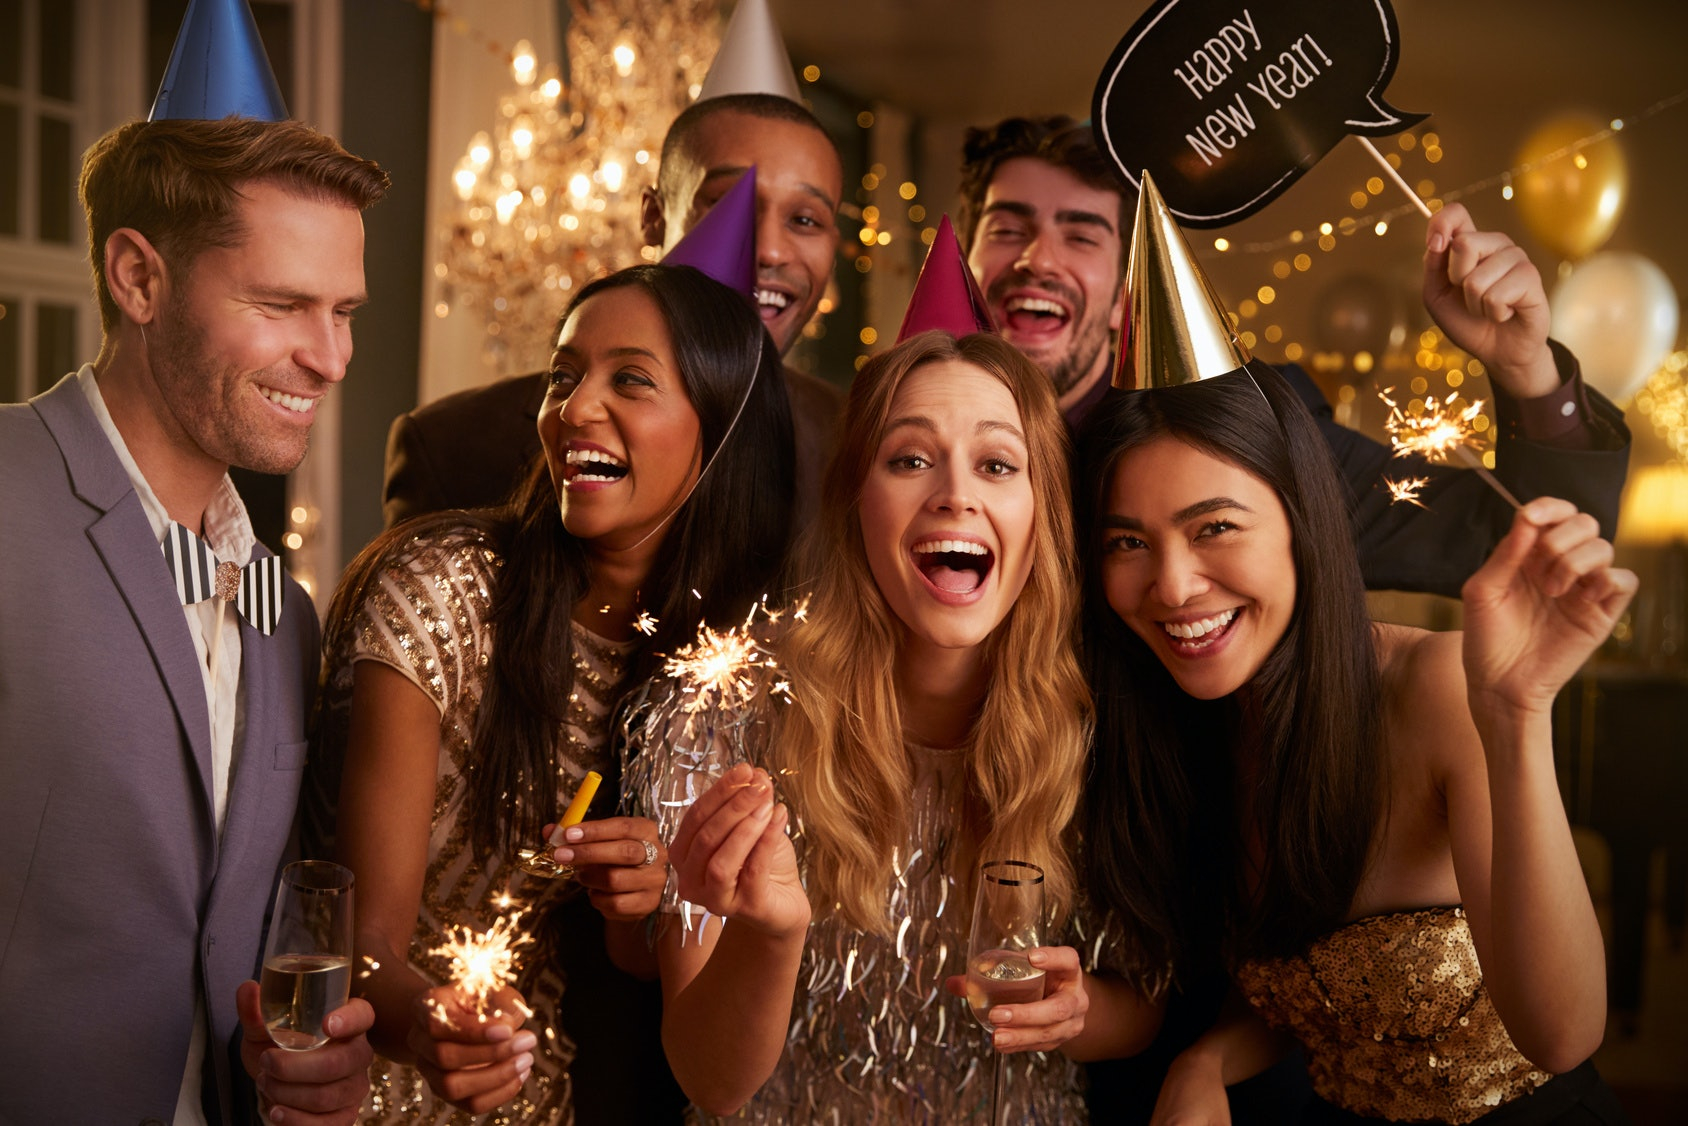 7 new years eve 2017 party ideas that are proof staying home can be the most fun